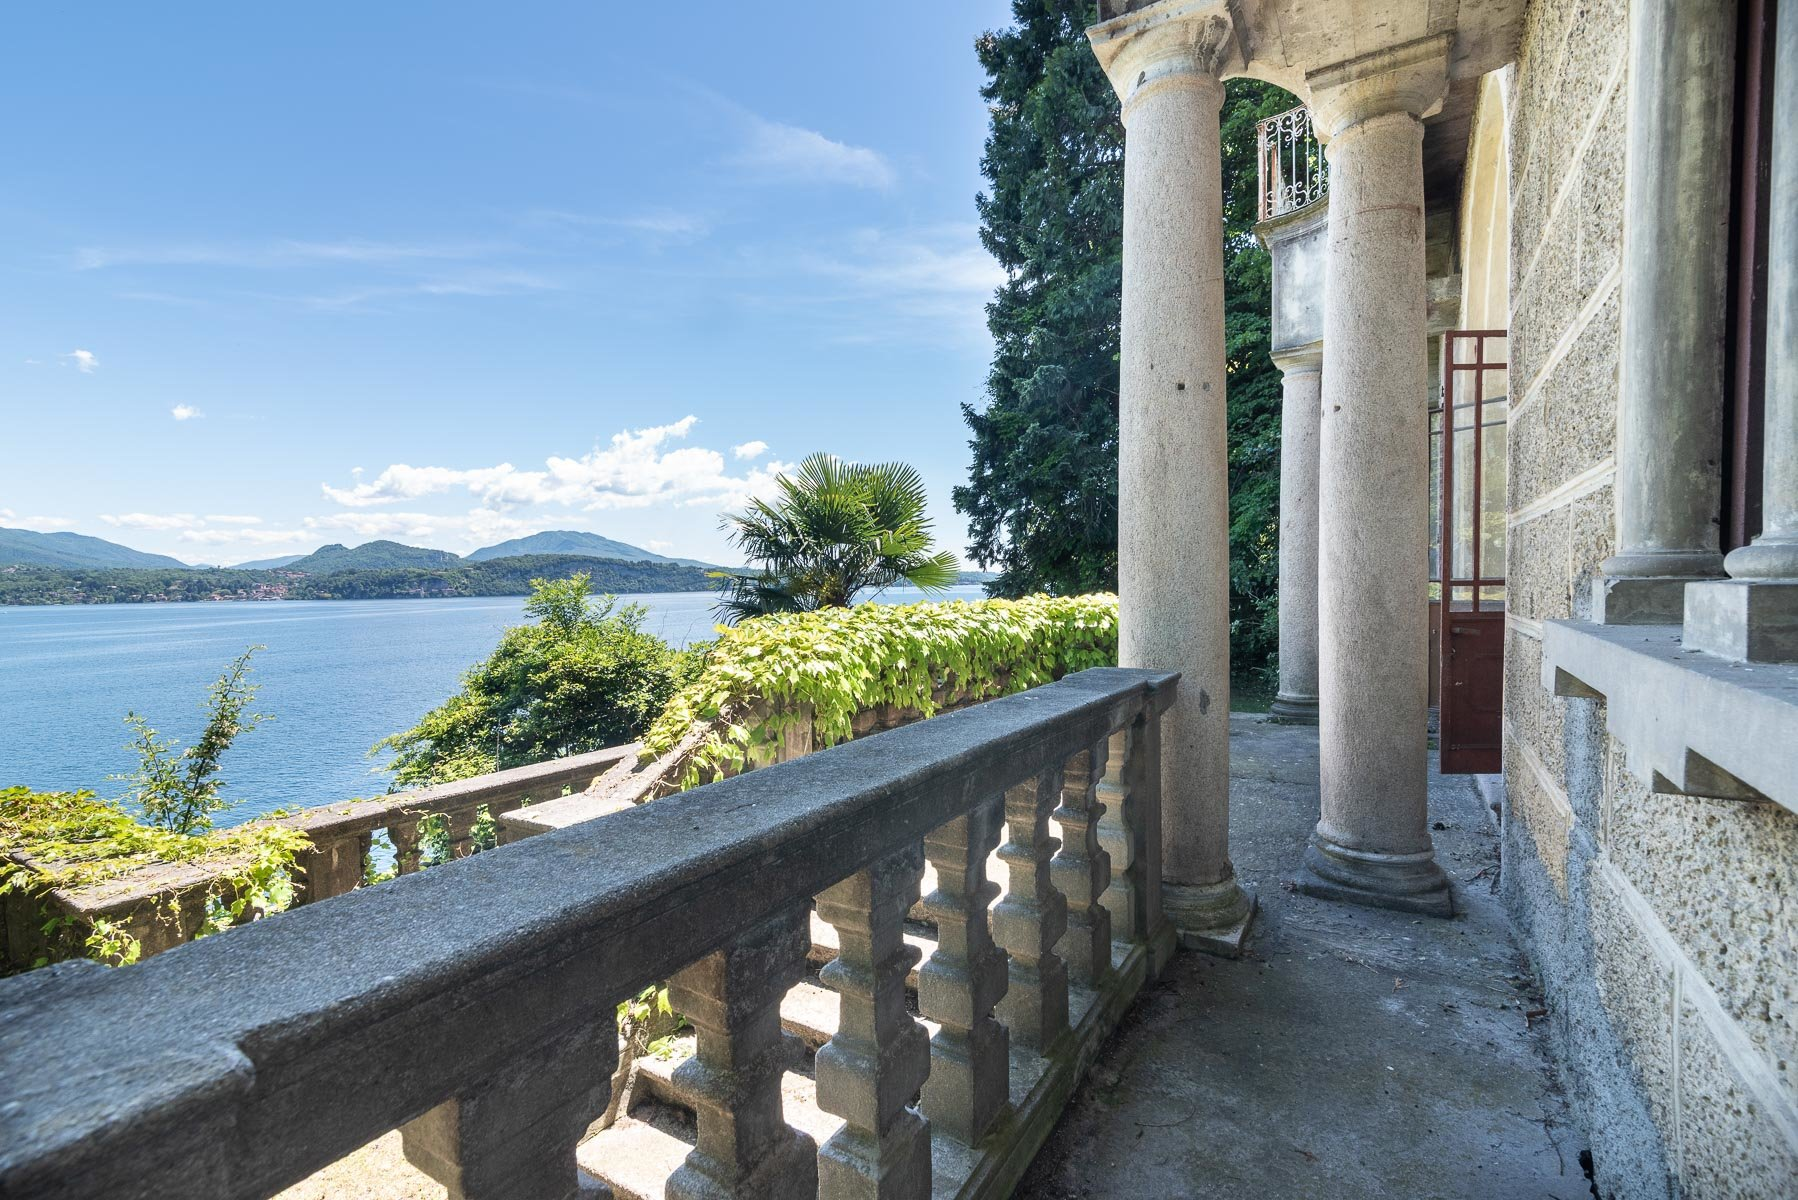 Castle for sale in Stresa on Lake Maggiore- lake view